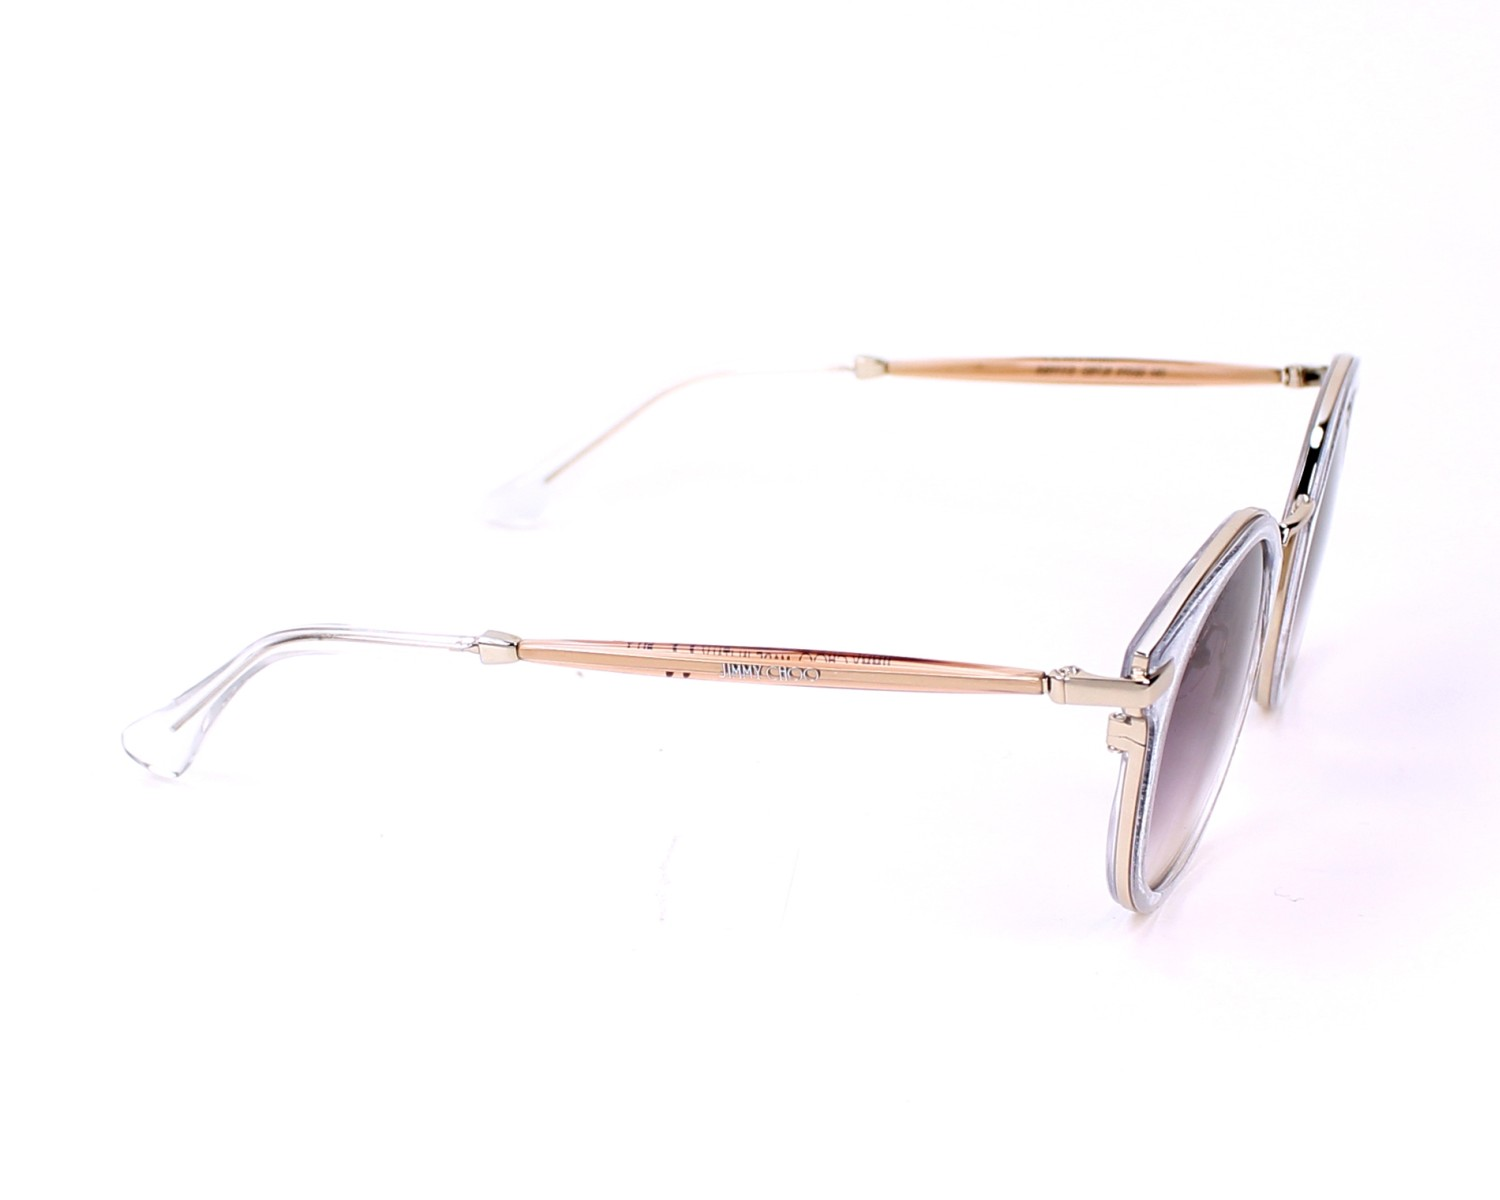 92491425b004 thumbnail Sunglasses Jimmy Choo RAFFY-S QBT/J8 - Clear Silver side view